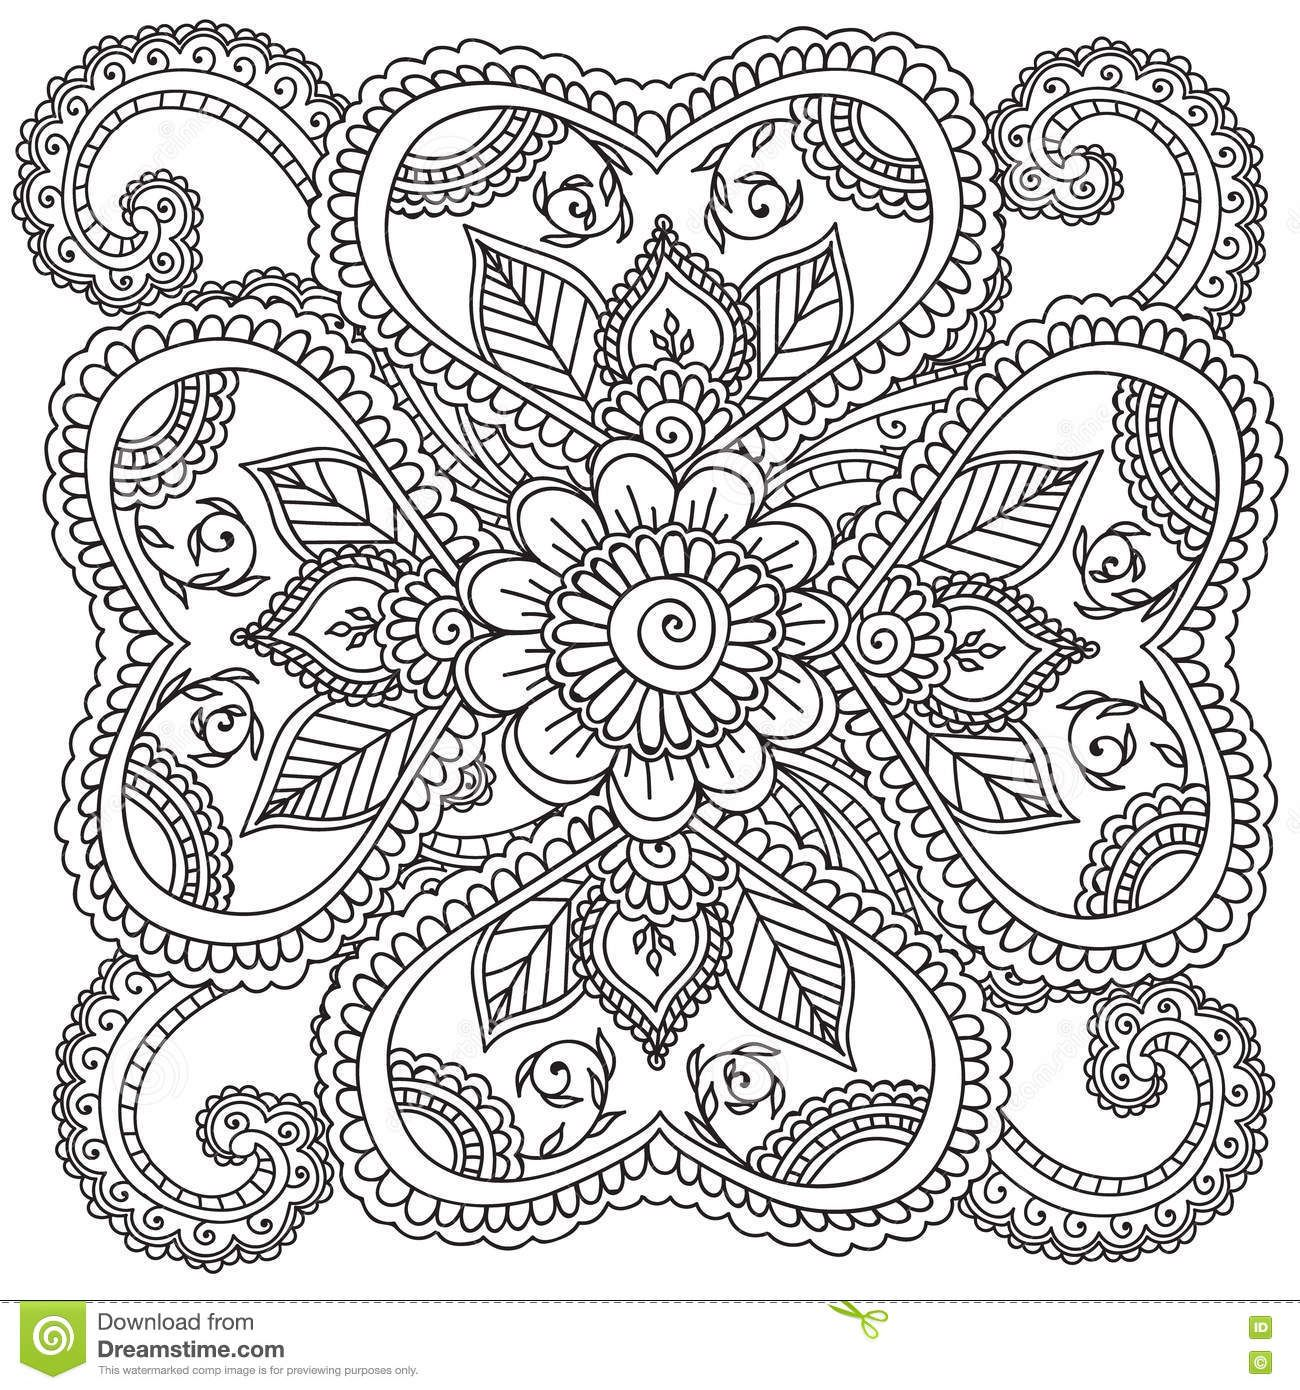 coloring pages for adults henna mehndi doodles vector image on vectorstock - Mehndi Coloring Pages